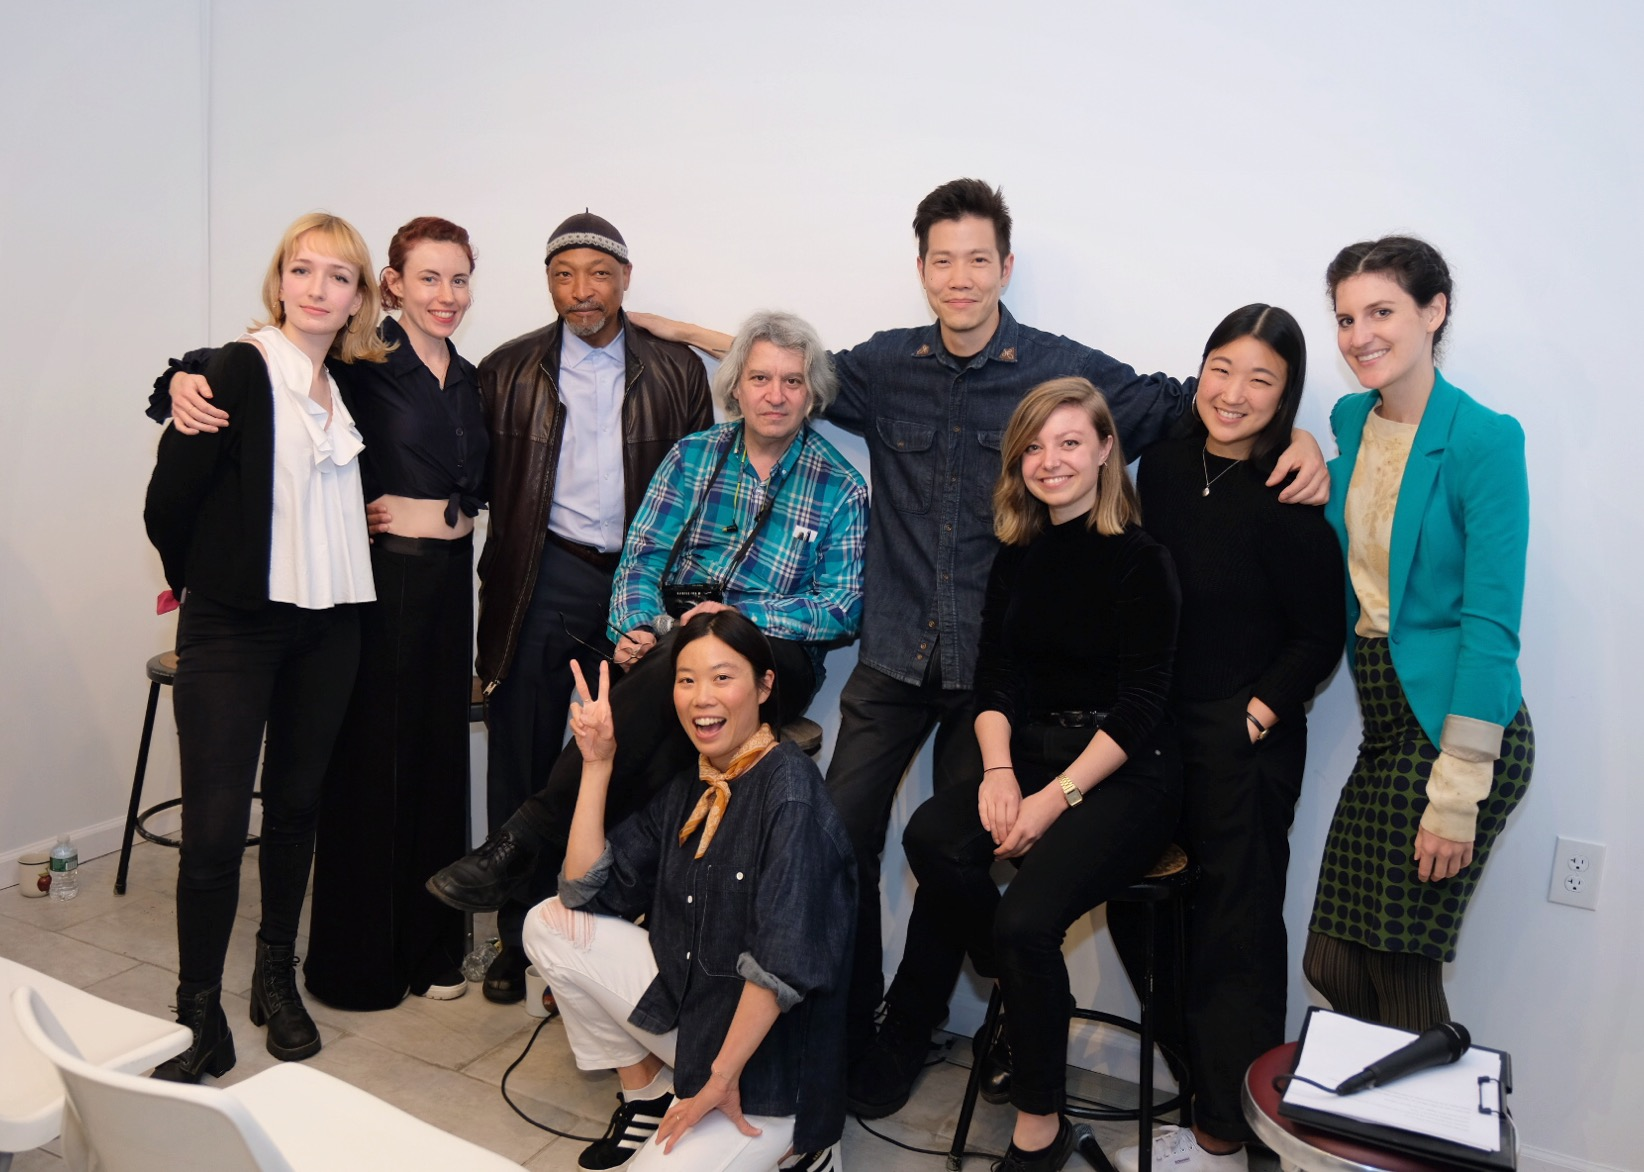 Analog Group Photo! Pictured from left to right: Fiona Veronique, Megan Mack, Lonnie Graham, Geoffrey Berliner, Lanna Apisukh, Justin Lin, Birgit Buchart, Rachel Jun and Sina Basila.